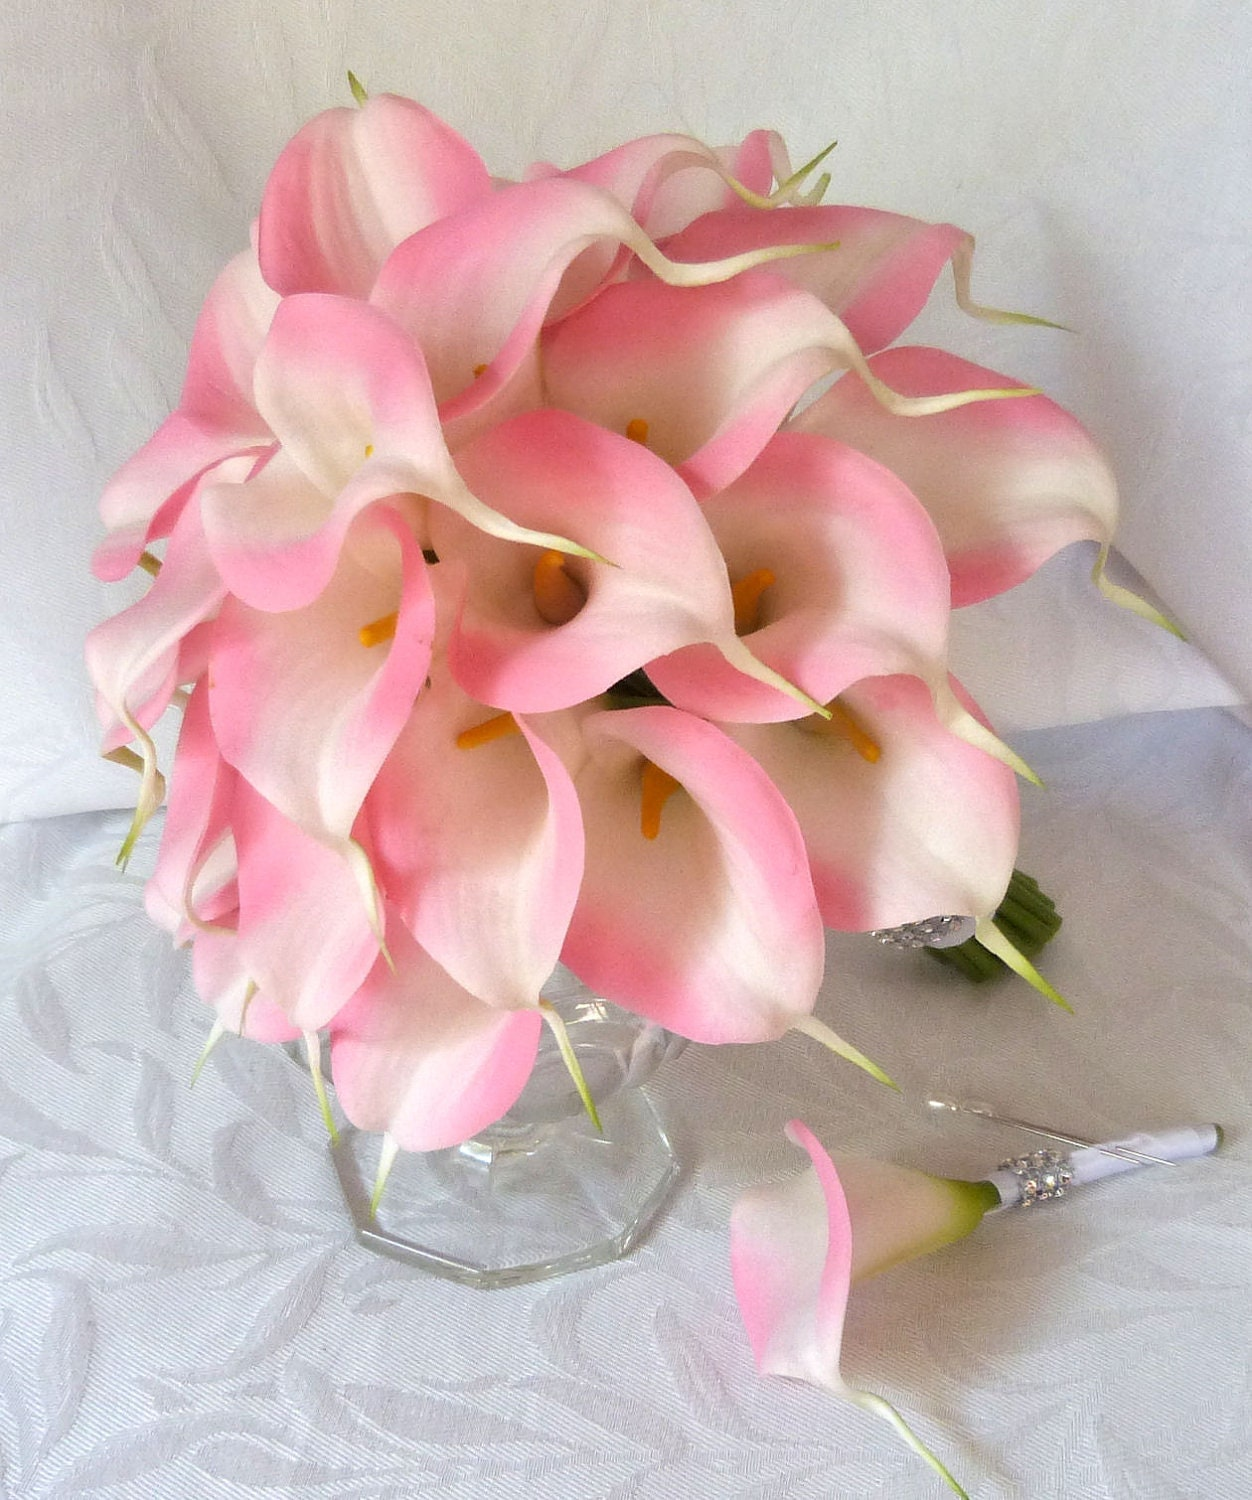 Lily Flower Wedding Bouquet: Pink Calla Lily Wedding Bouquet Real Touch Mini Pink Calla